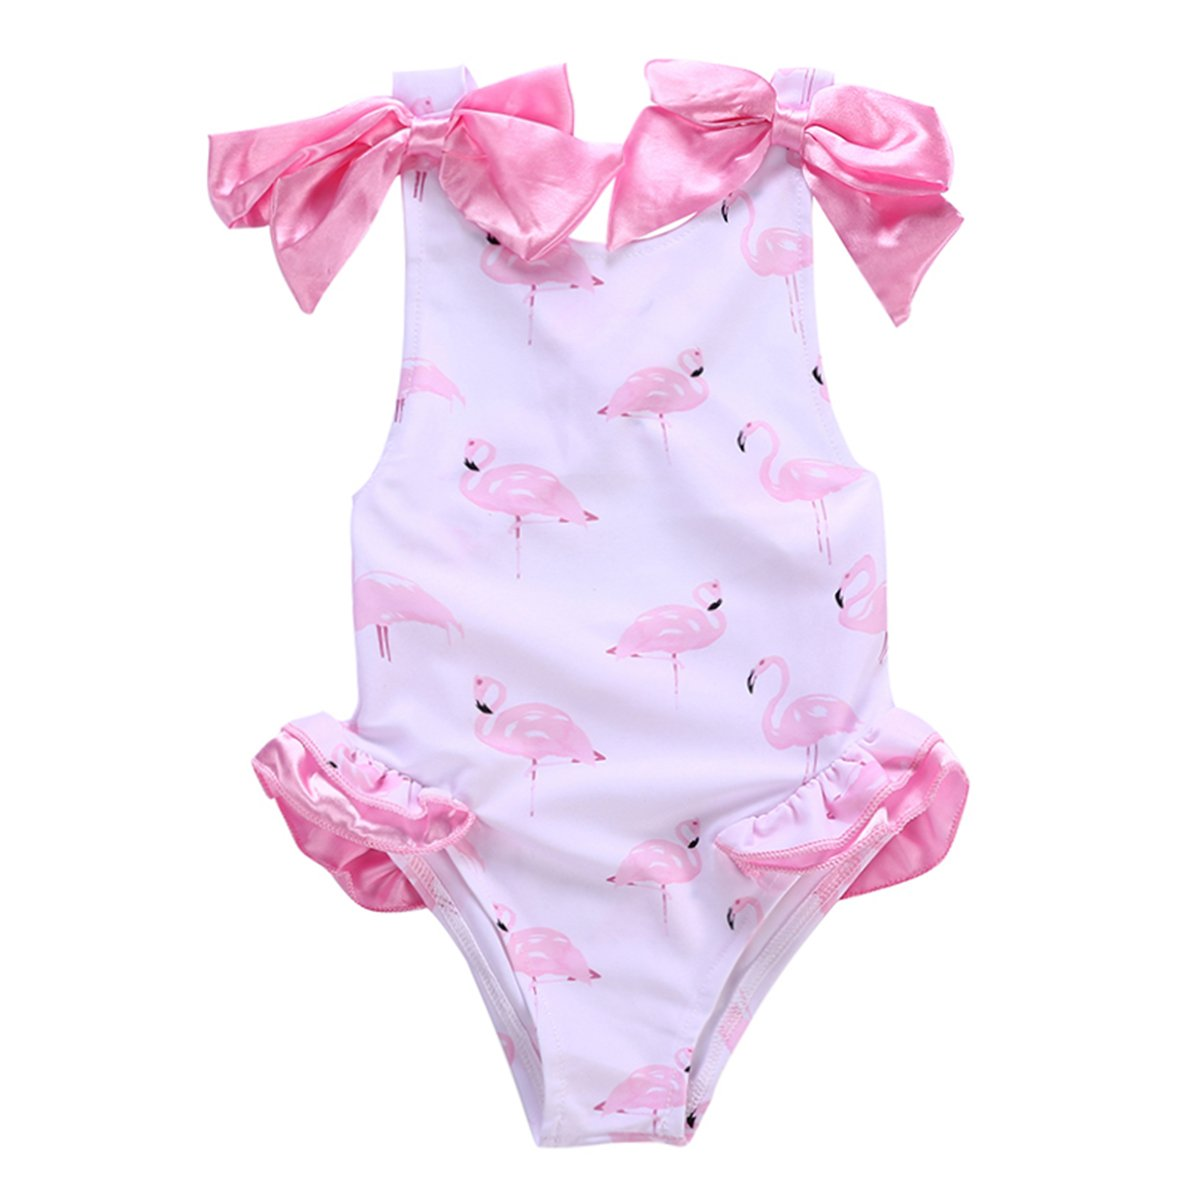 Toddler Baby Girl Bowknot & Flamingo Swimsuit Beachwear Swimwear Bathing Suit